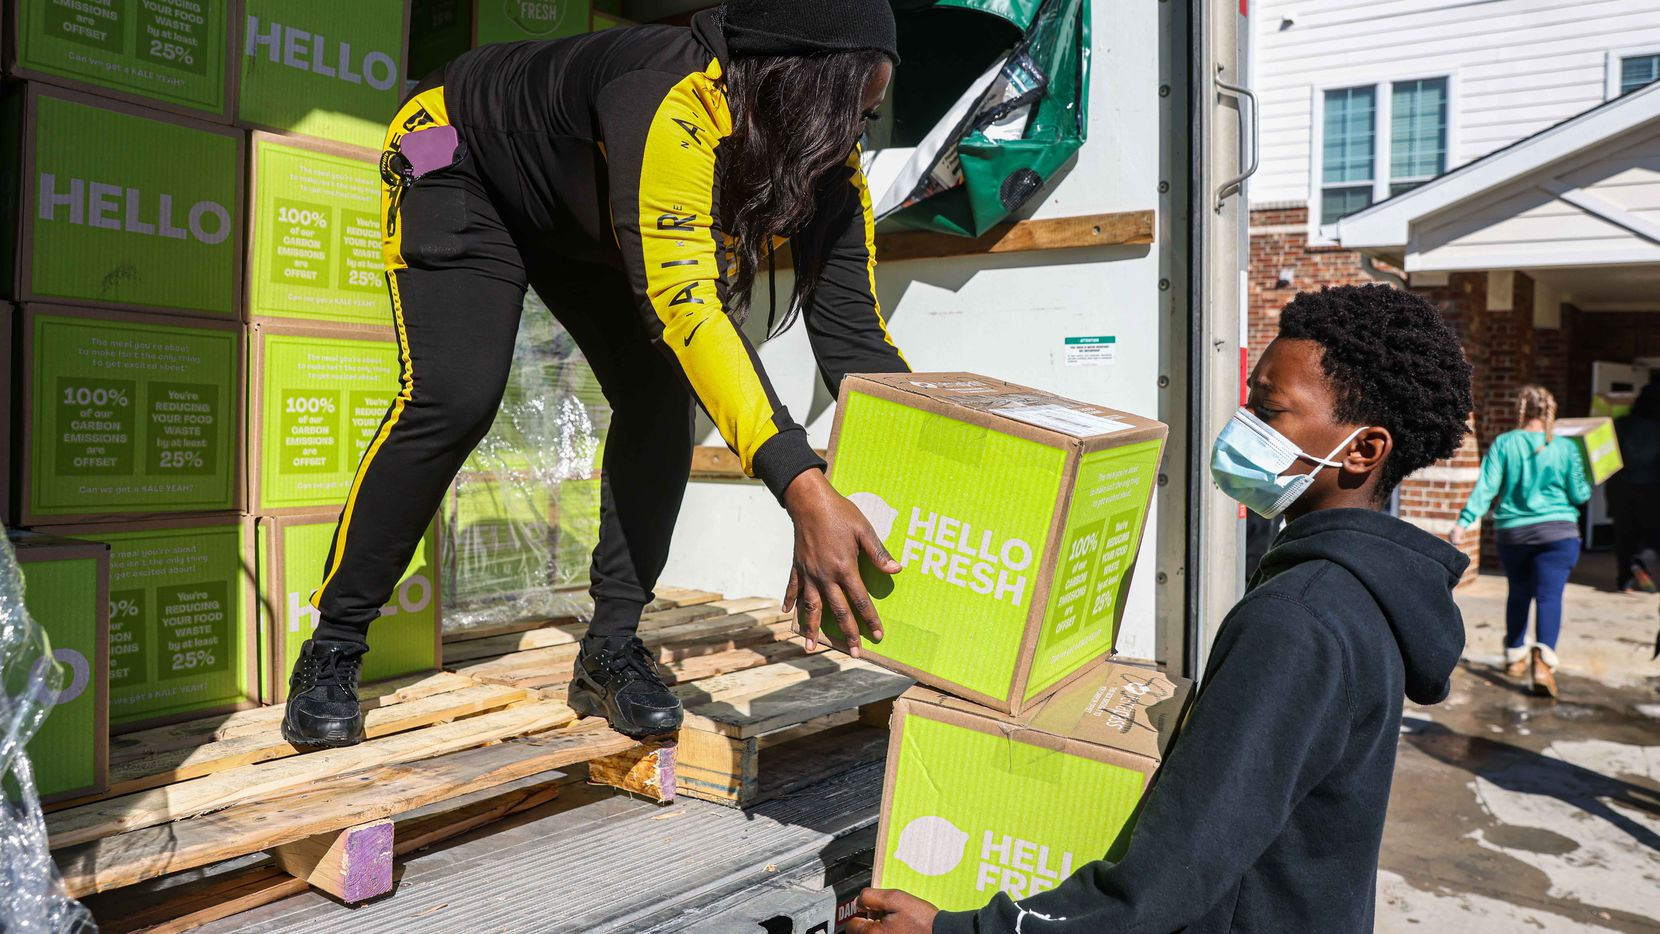 Local volunteer Sonya Tubbs with the help of Marcus Thomas, 13, bring boxes of food for the community of Lakewest Senior Housing at Westmoreland Heights in Dallas on Saturday, February 20, 2021. The community is still without water after snow storm Uri hit Dallas this week. (Lola Gomez/The Dallas Morning News)